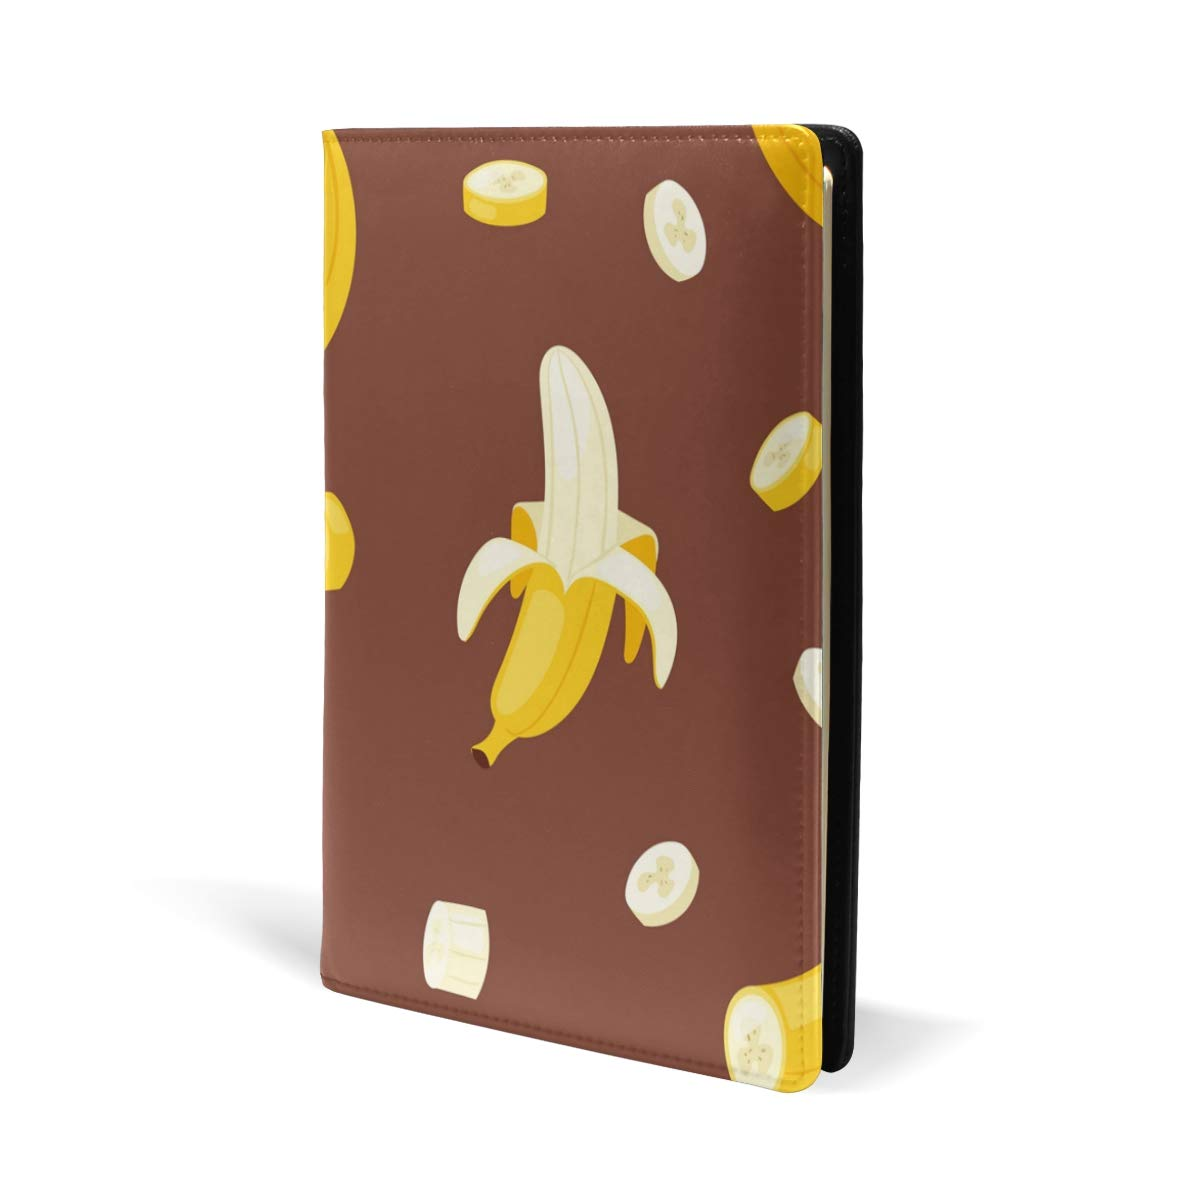 Book Covers A5 Notebook Textbook School Educational Supplies Office Homecoming Banana